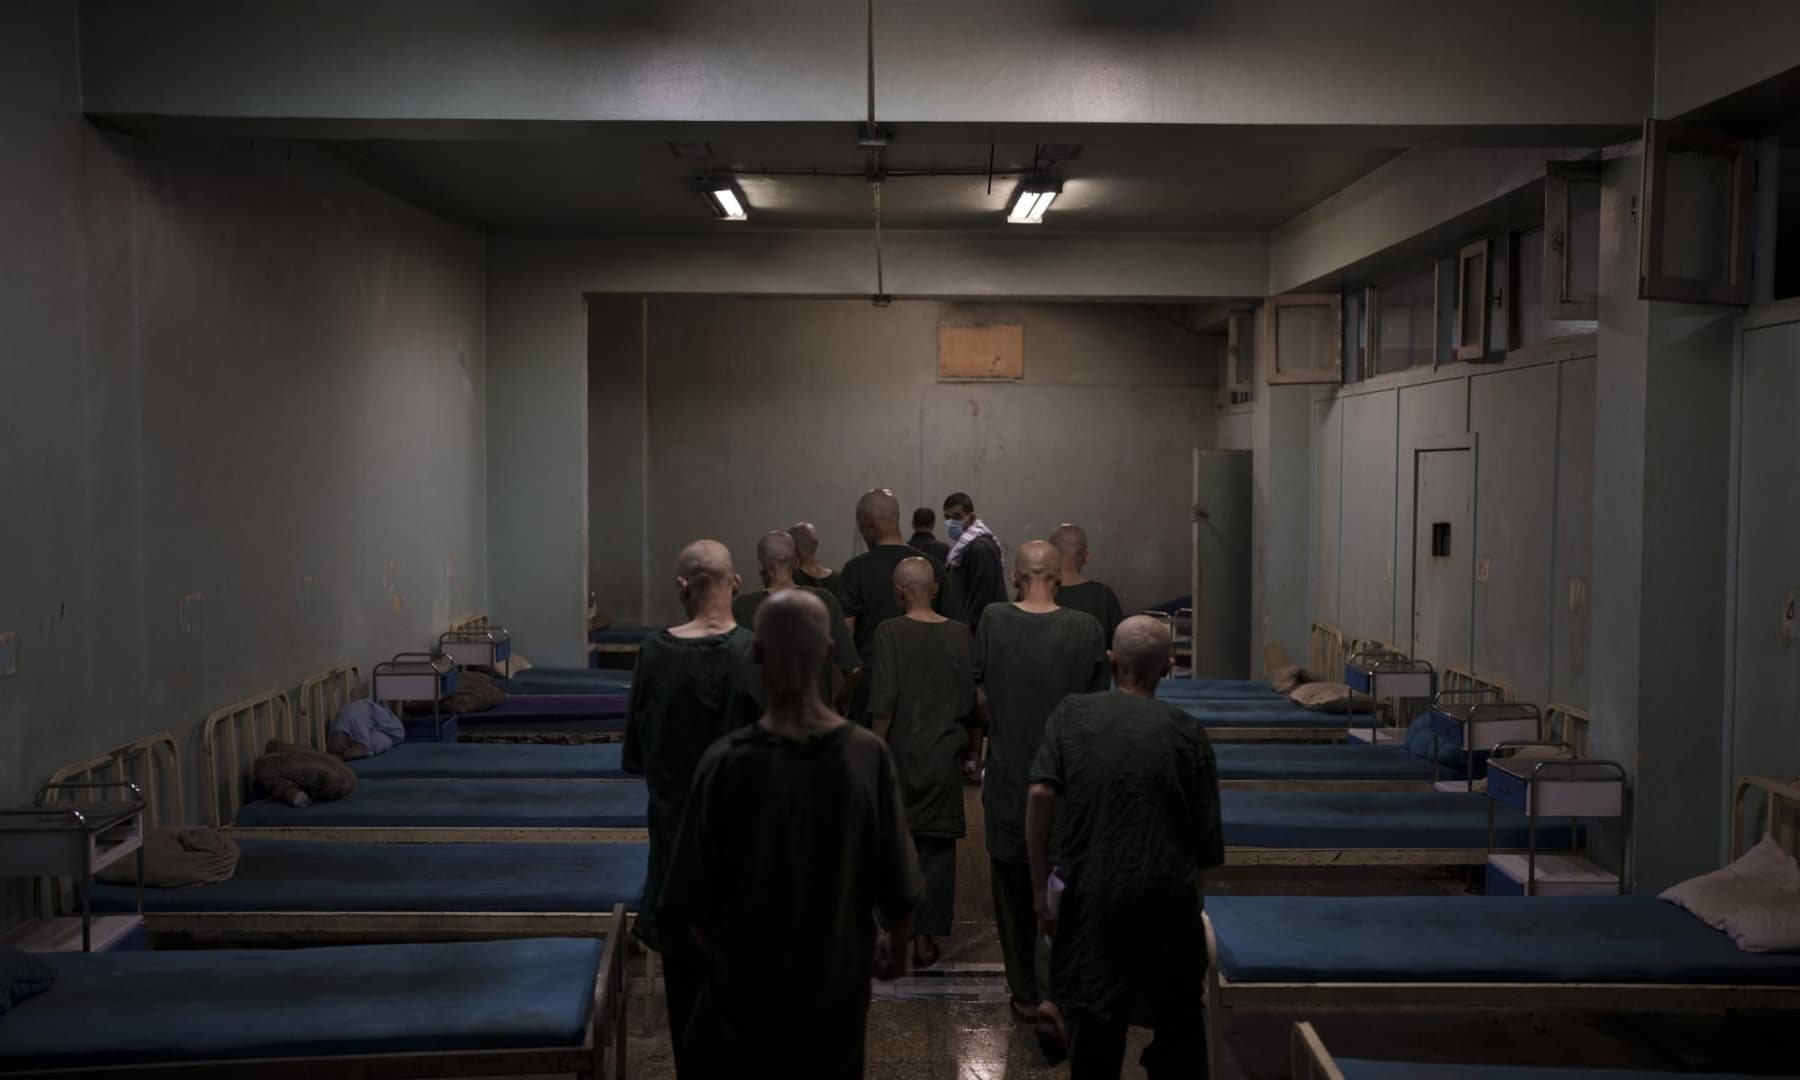 Drug users detained during a Taliban raid are taken to their room at the detoxification ward of the Avicenna Medical Hospital for Drug Treatment in Kabul, Afghanistan, October 2, 2021. — AP